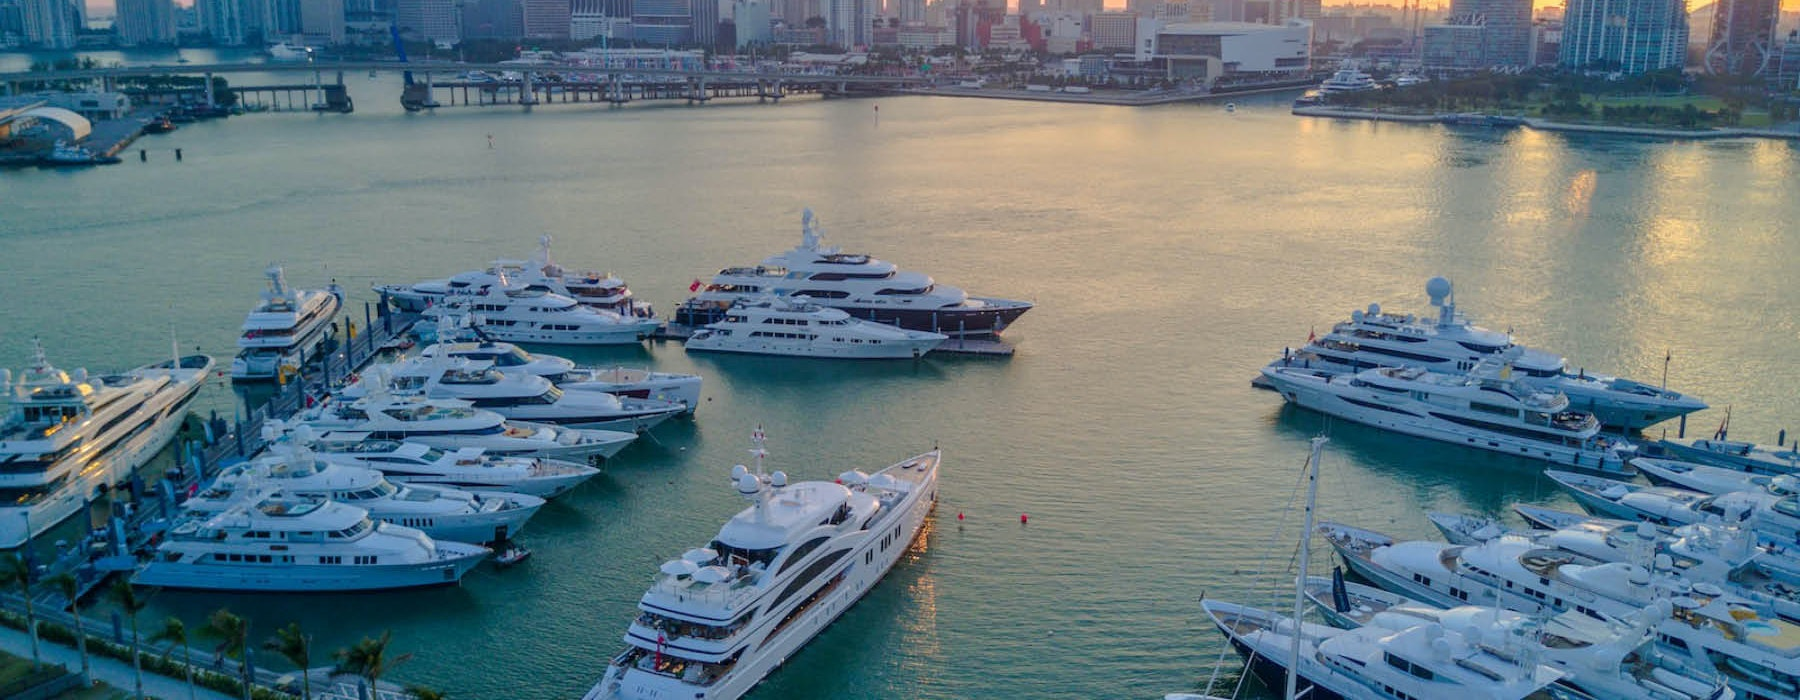 Yachts-On-Display-at-SuperYacht-Miami-2020_1